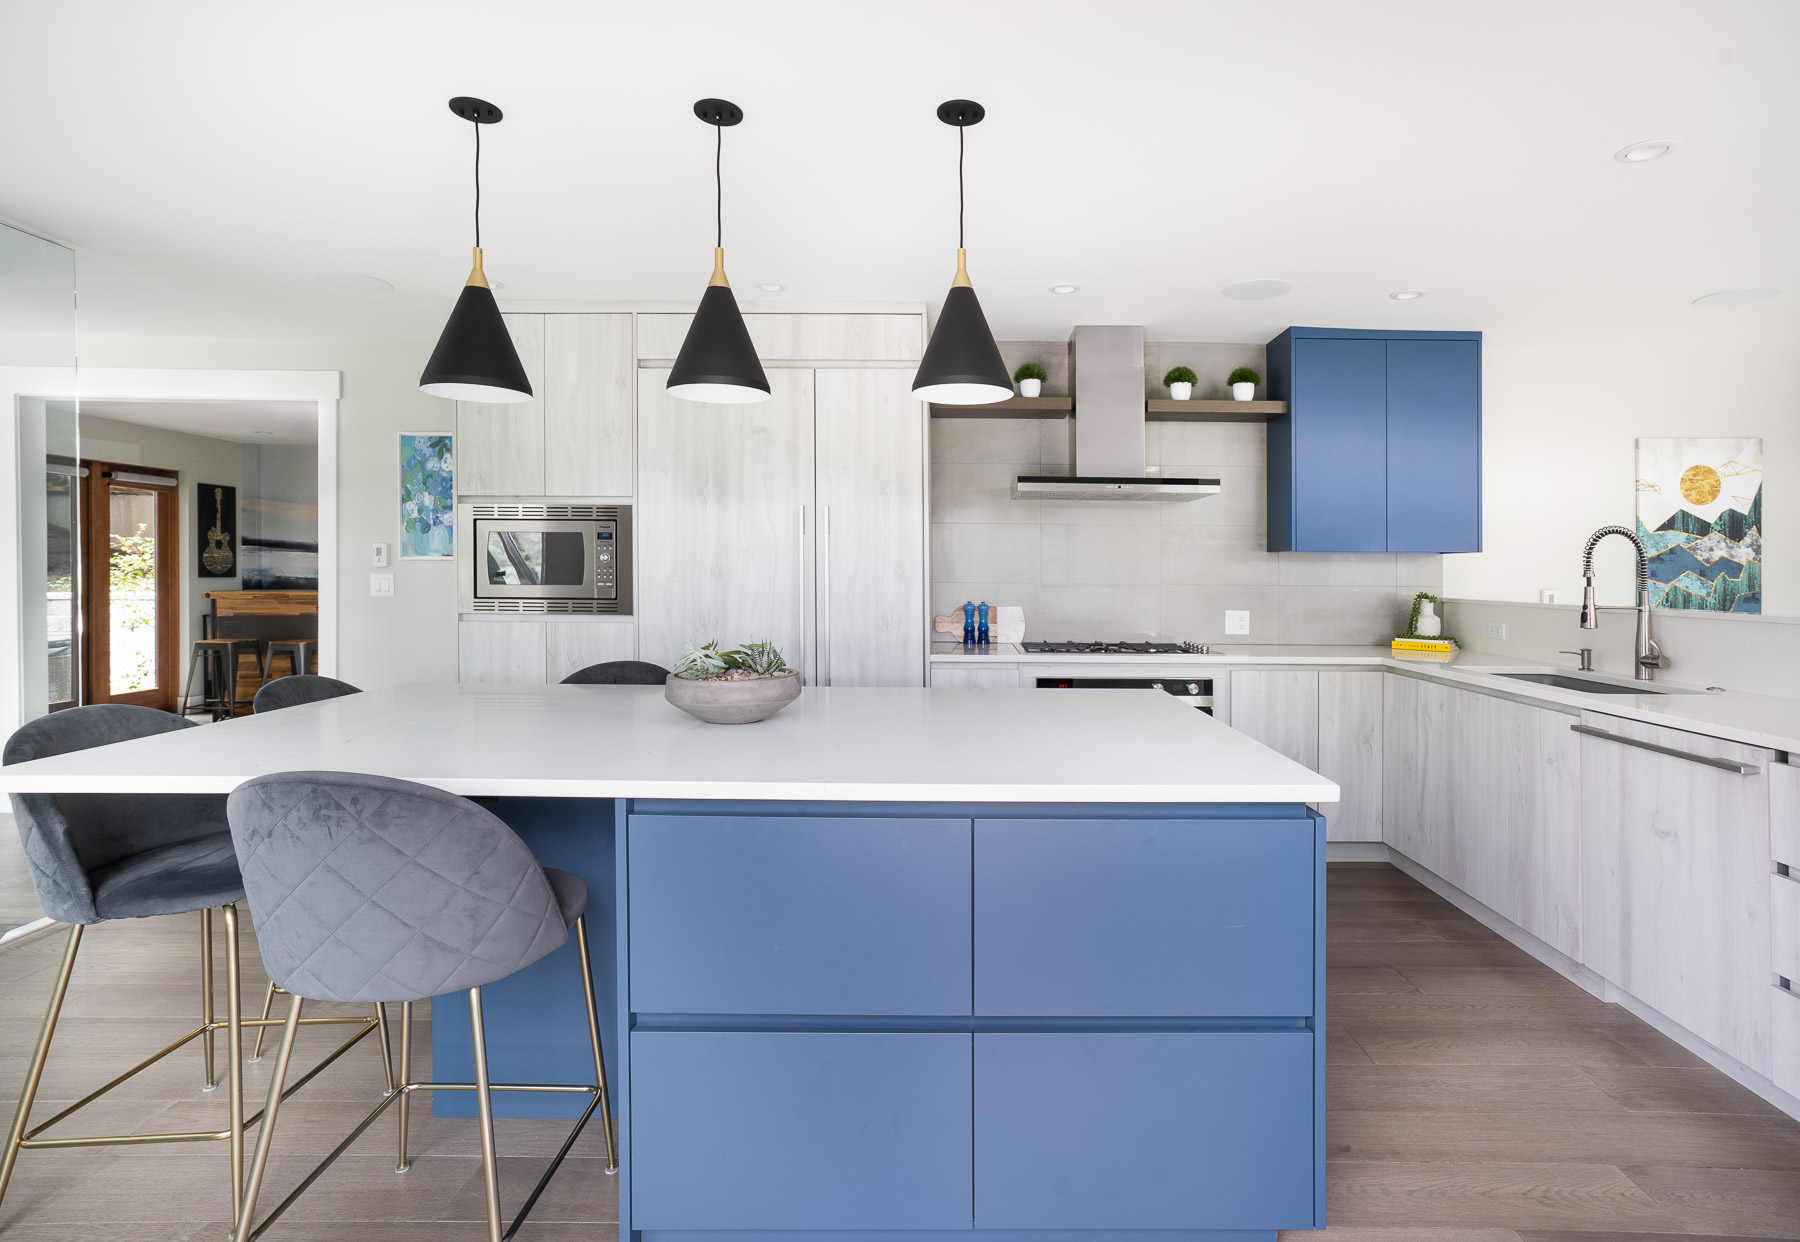 Kitchen with modern laminate cabinetry